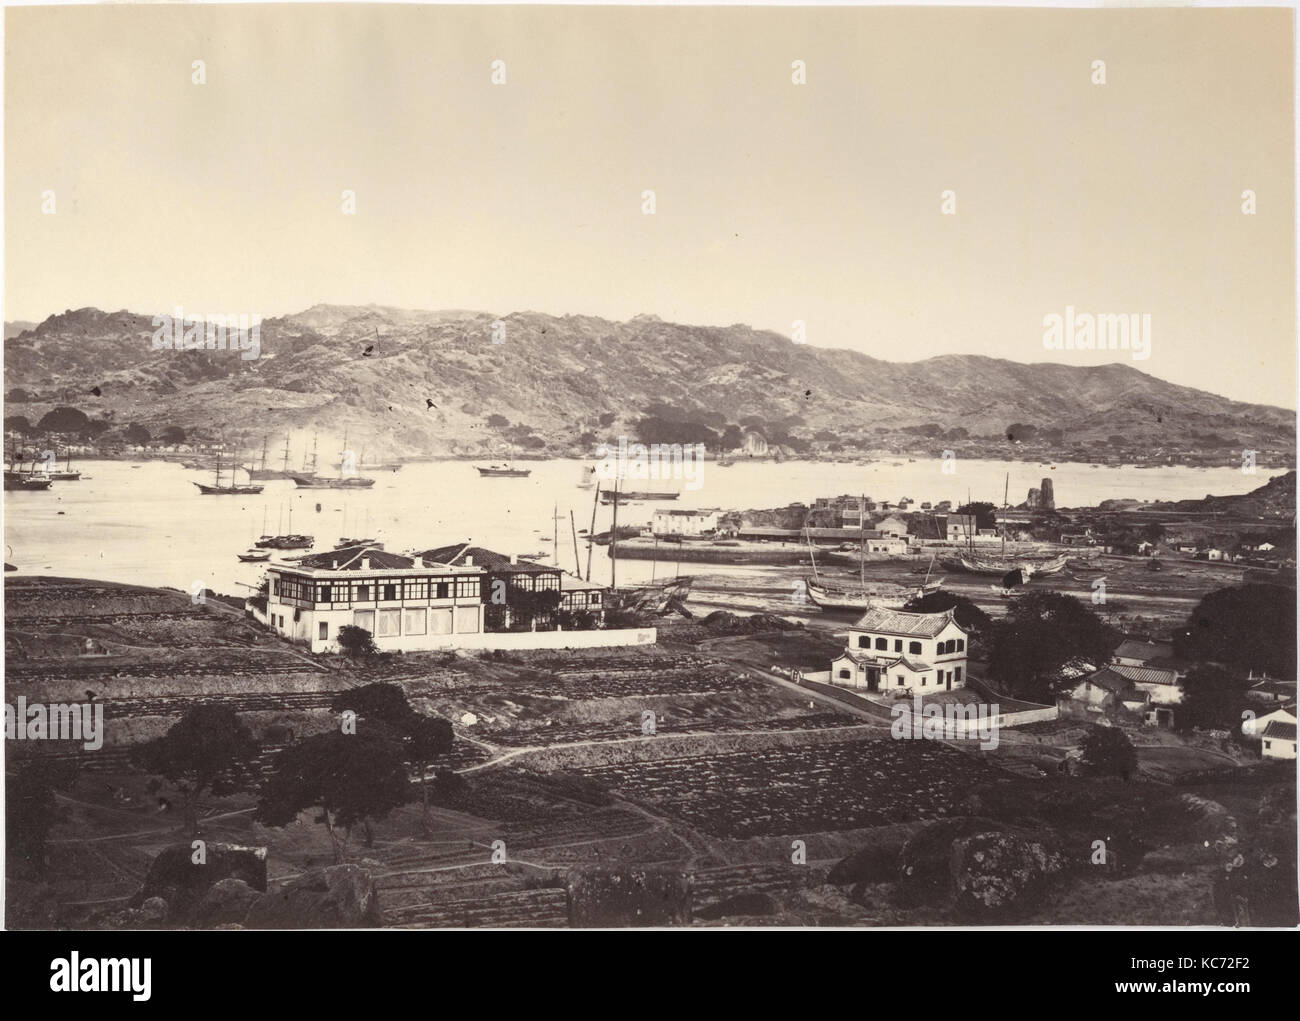 Lower Harbour, Amoy, Attributed to John Thomson, ca. 1869 - Stock Image